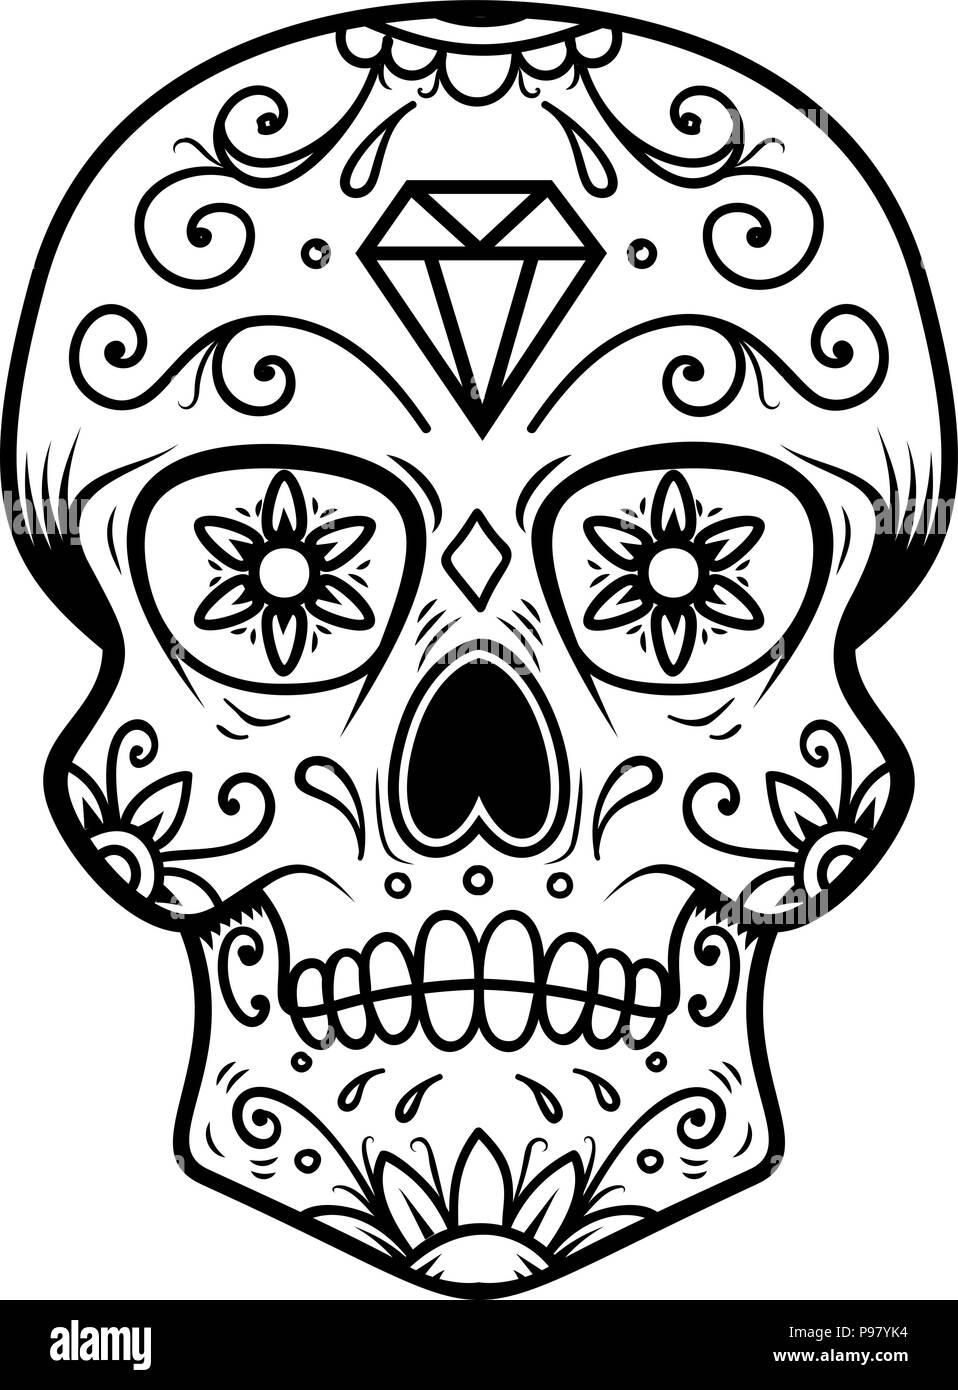 This is a photo of Amazing Black And White Sugar Skull Drawing